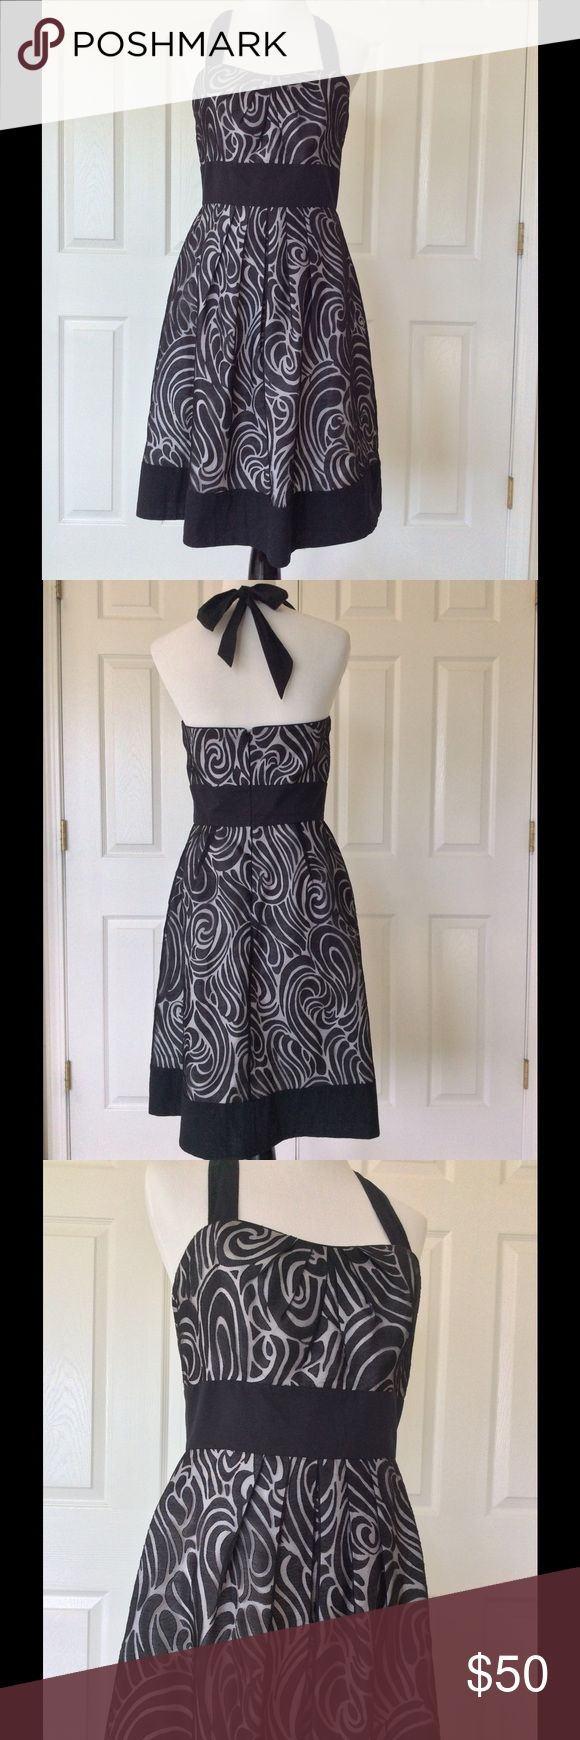 "🆕Listing WHBM Dress Beautiful halter style with shimmery black overlay with black hemline, waist and straps over a white lining. Tucking on bodice and skirt. Hidden back zipper. Rayon & polyester shell' cotton trim, acetate lining. Dry clean. Excellent pre-owned condition. Worn once. Bust 34"", empire waist 29"", hip up to about 47"", length from top of bodice 33"" 🎀Bundle discount  🚭Smoke free home 🚫No trades please  😍 Thank you for shopping with me. Please ask all questions before…"